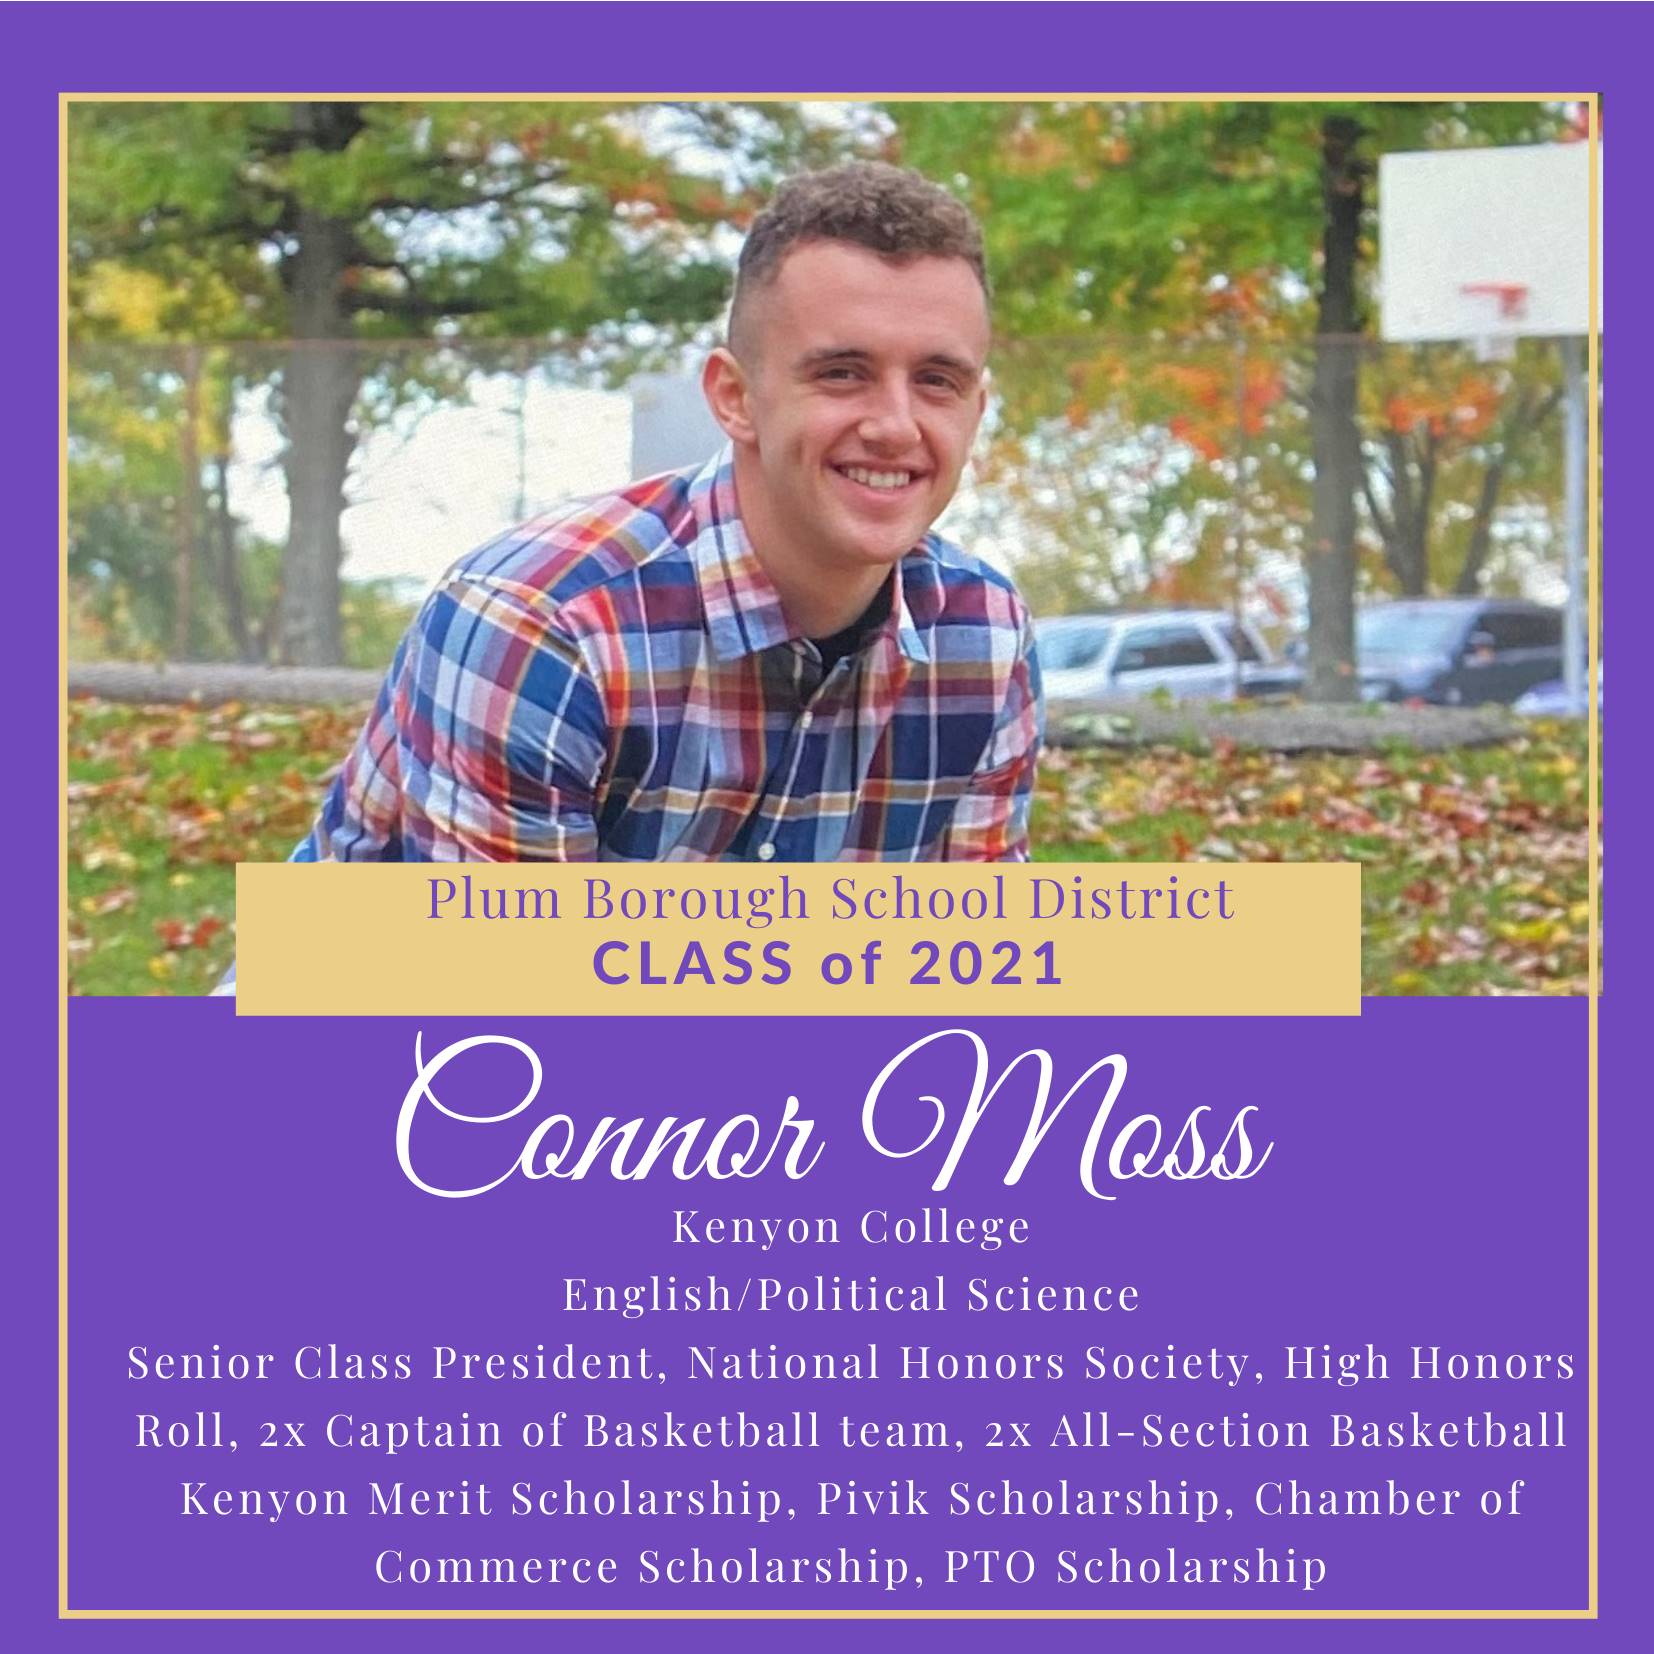 Congratulations to Connor Moss, Class of 2021!